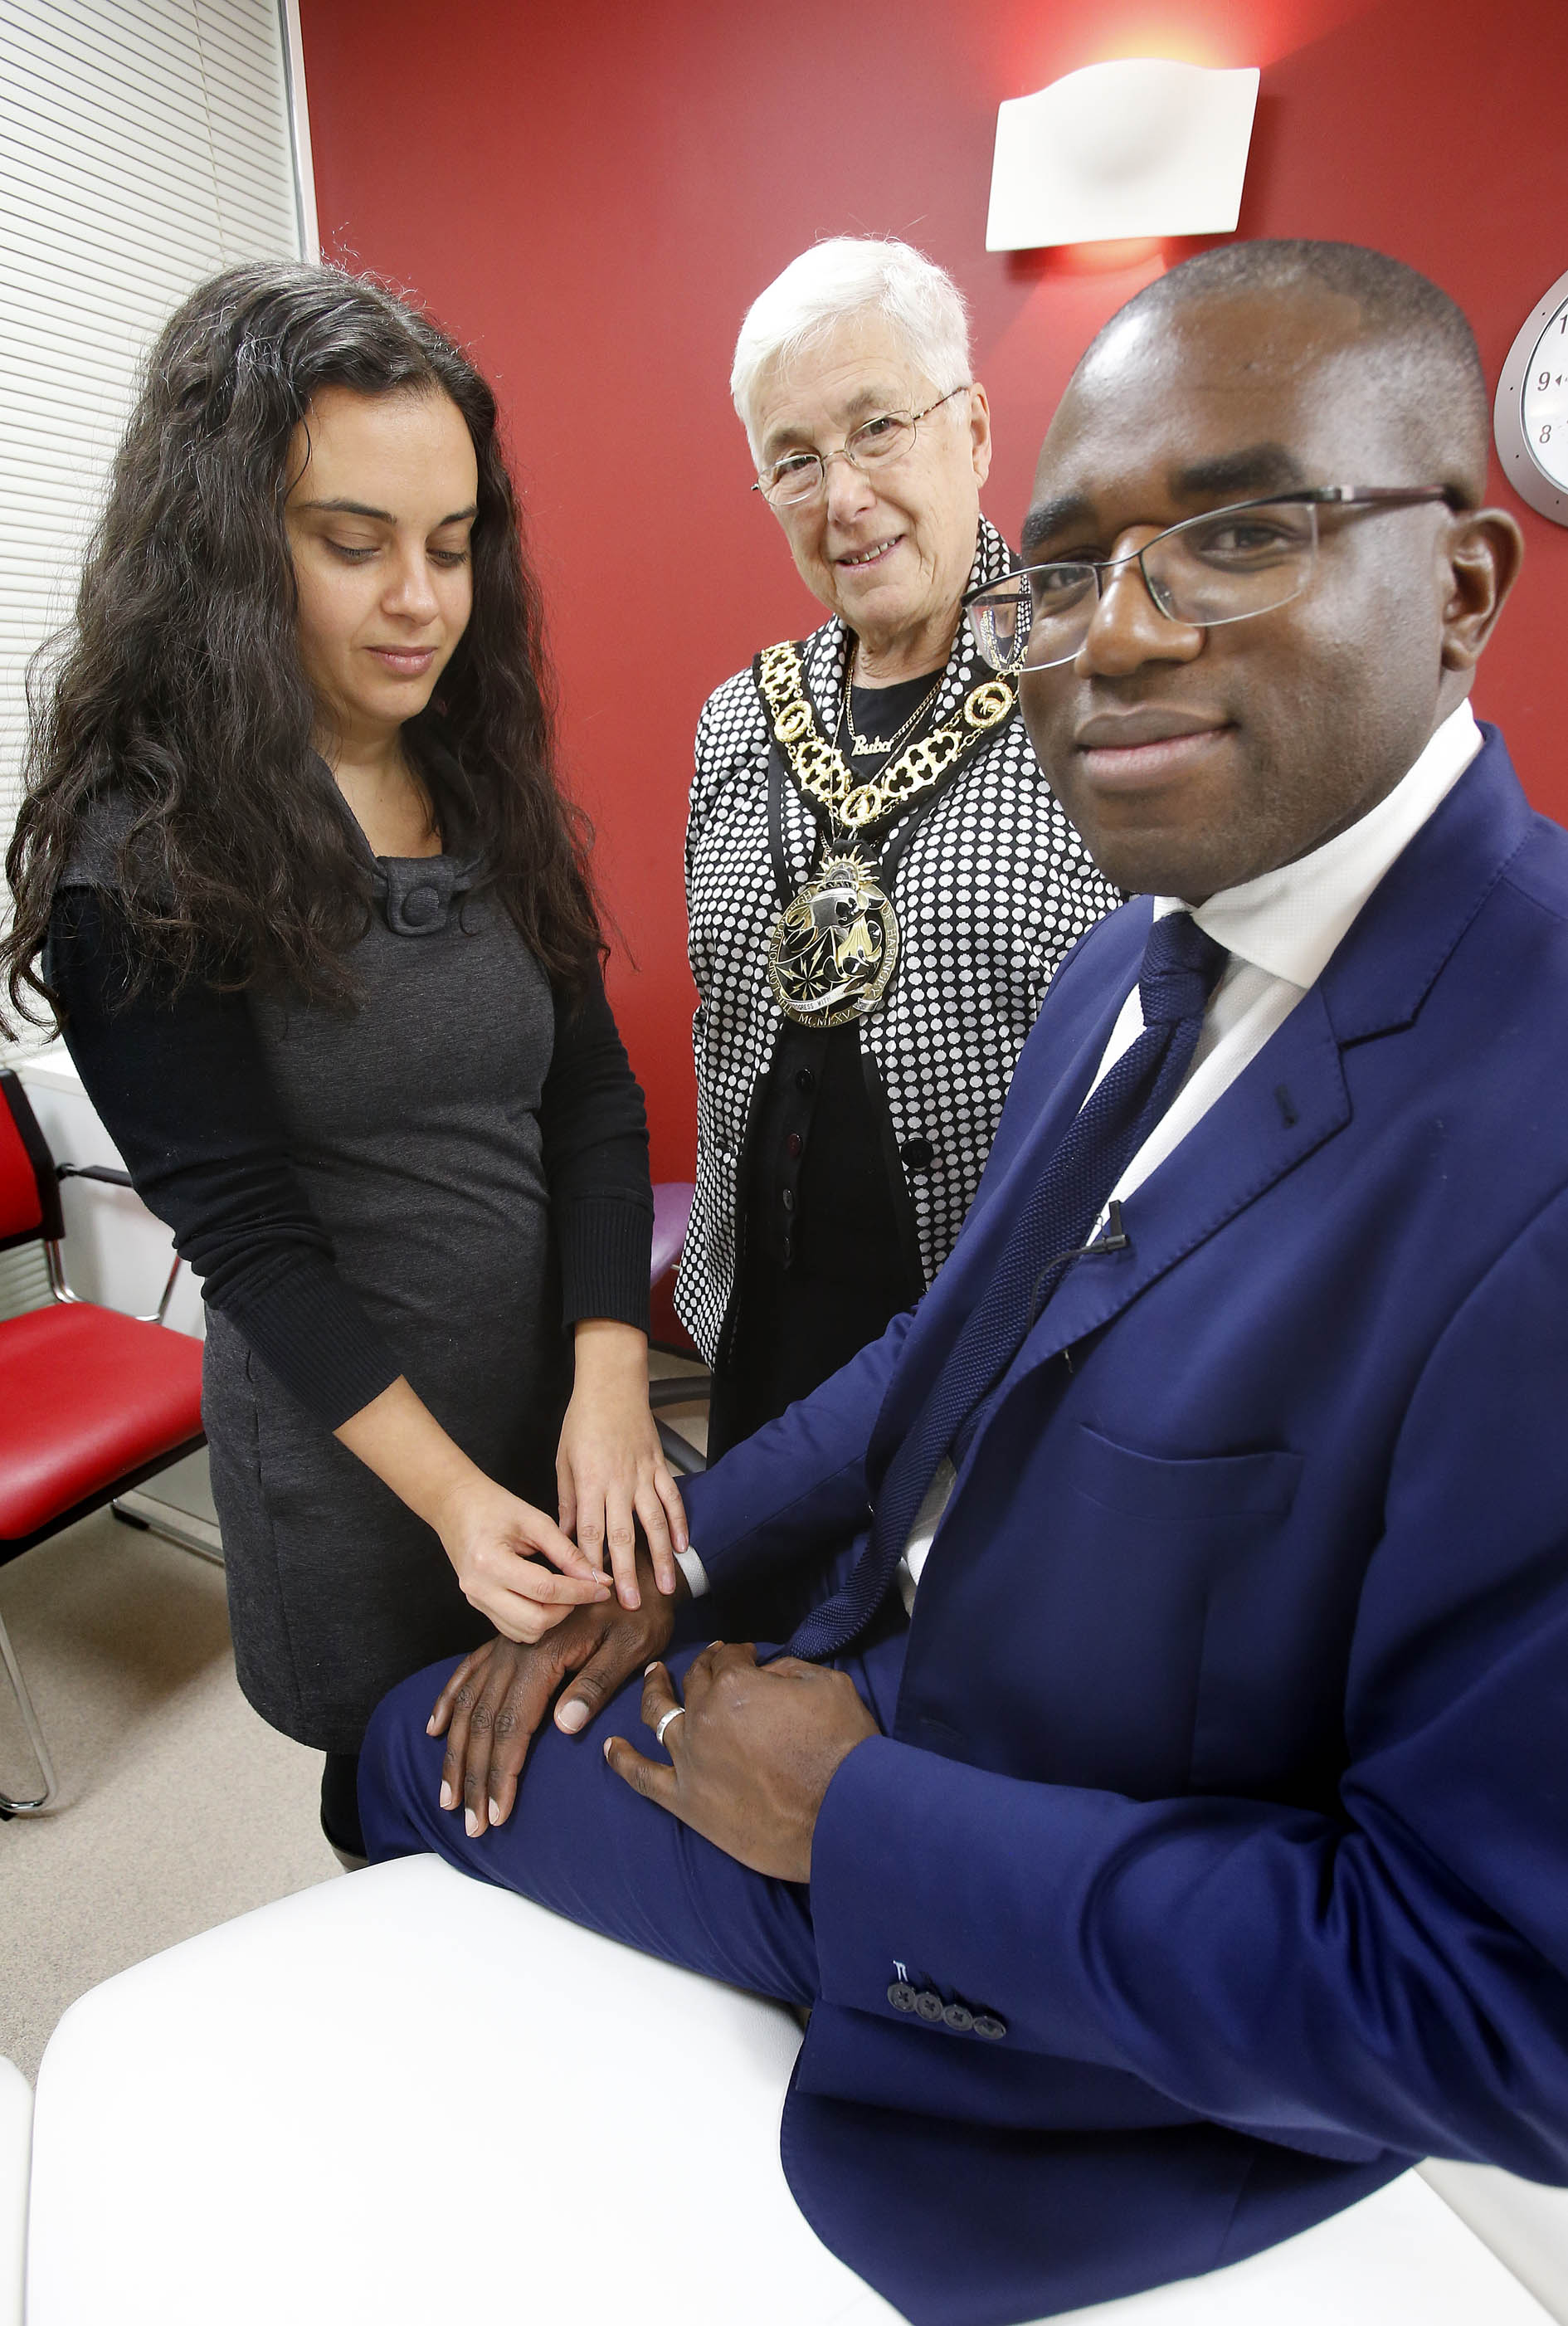 MP opens new facilities at health centre